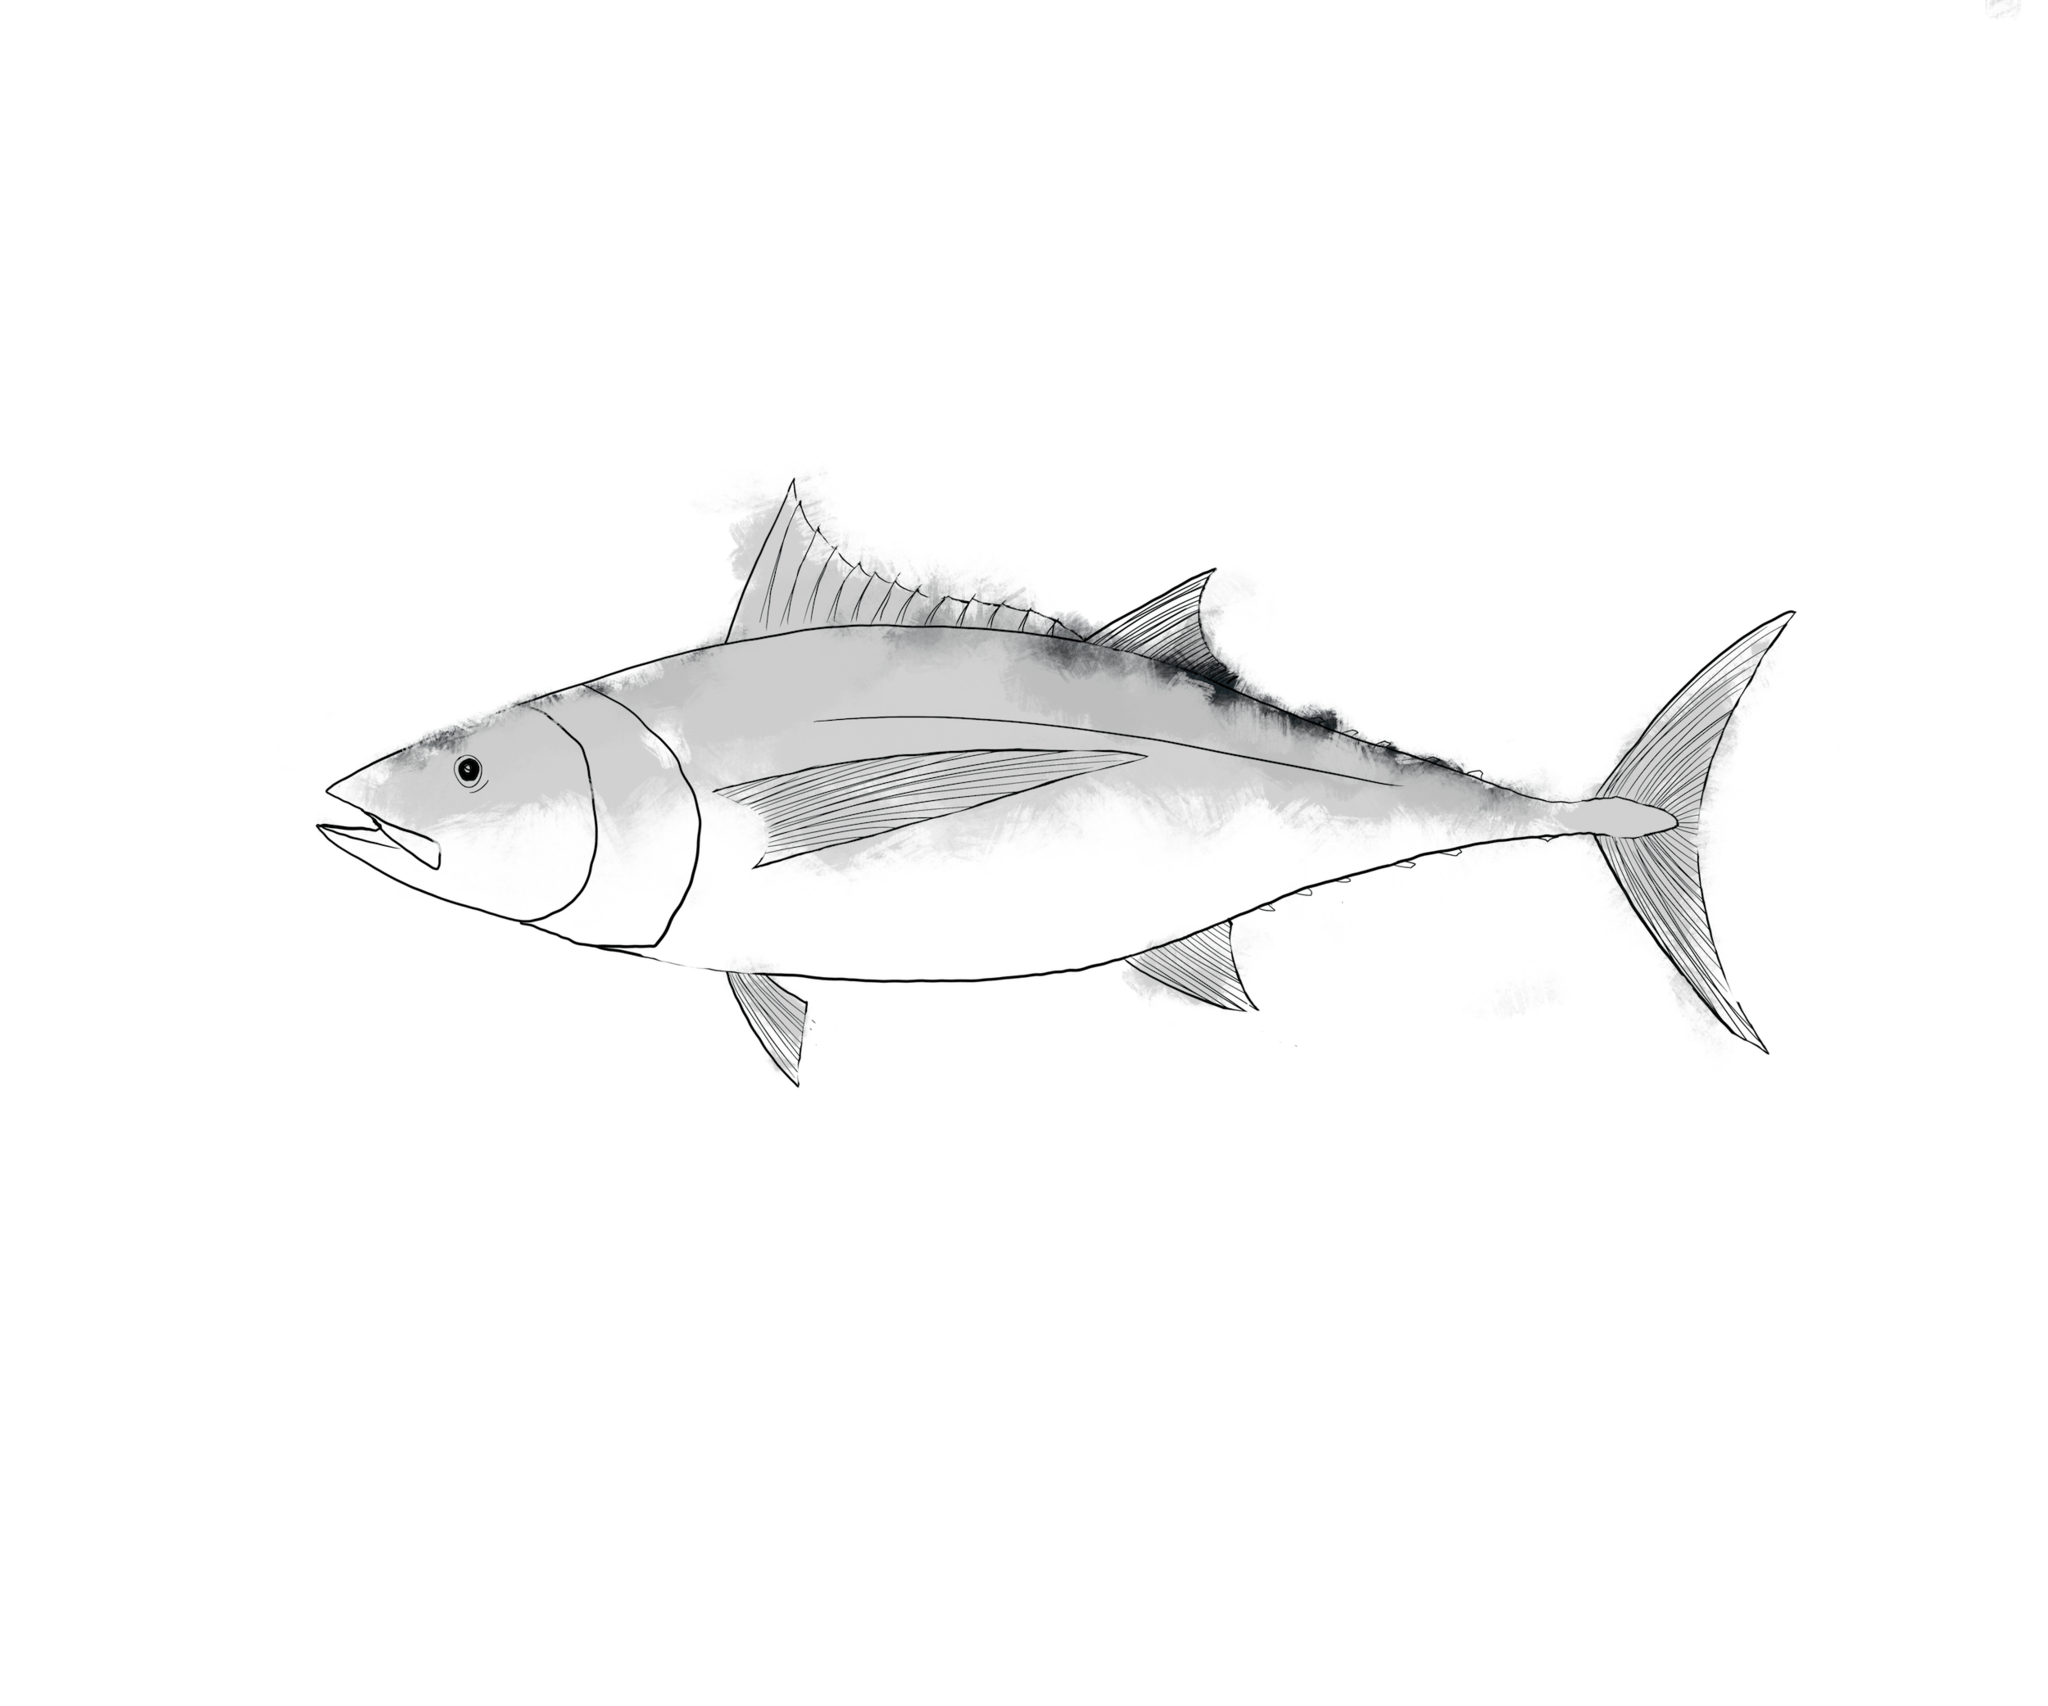 Clipart tuna fish black and white vector royalty free download Fishgirl Seafood vector royalty free download